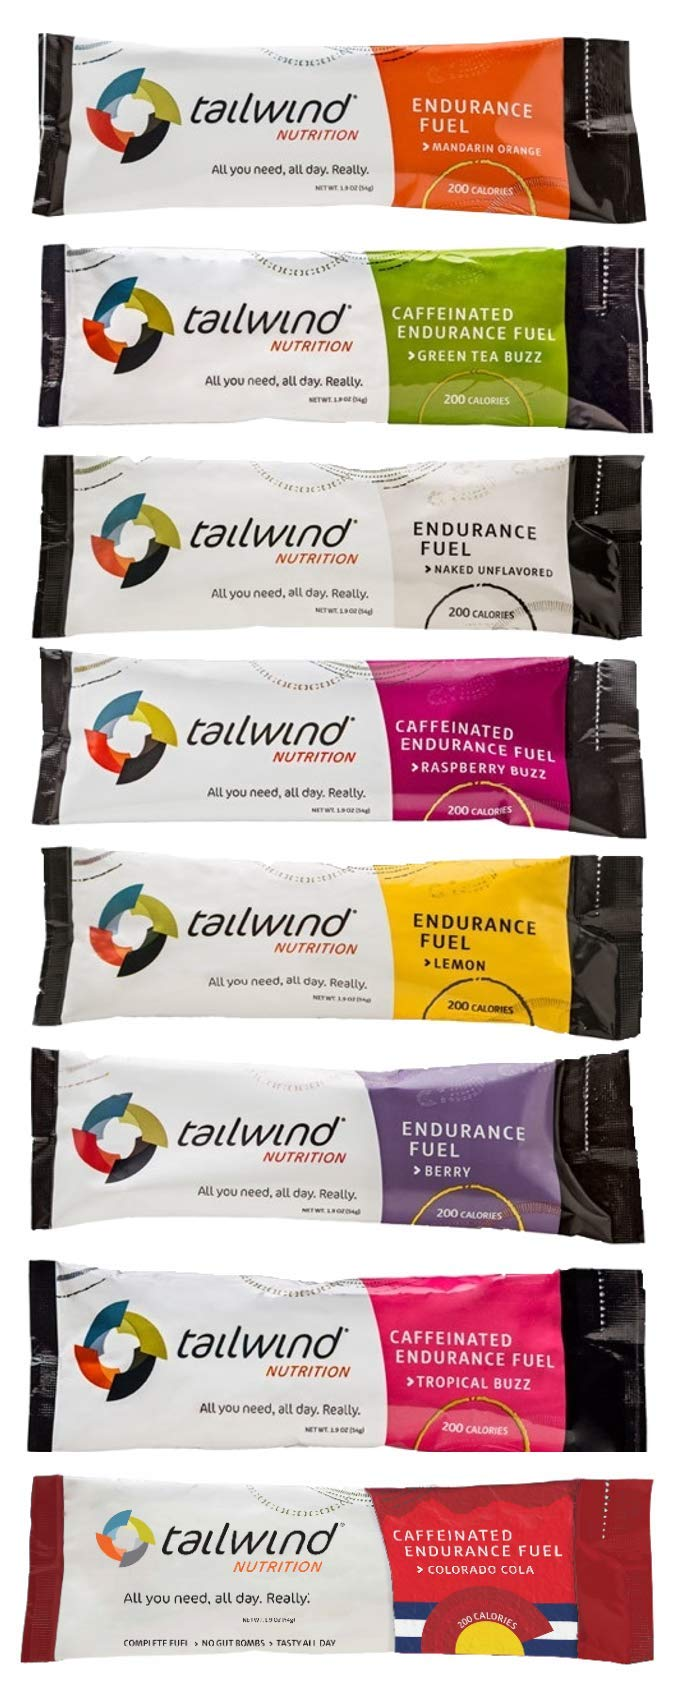 Tailwind Nutrition - Vegan Marathon Nutrition Endurance Fuel Starter Pack for Running, Cycling, Marathon, Triathlon, Ditch The Energy Gels, Bars, Chews and Try Tailwind as a Replacement